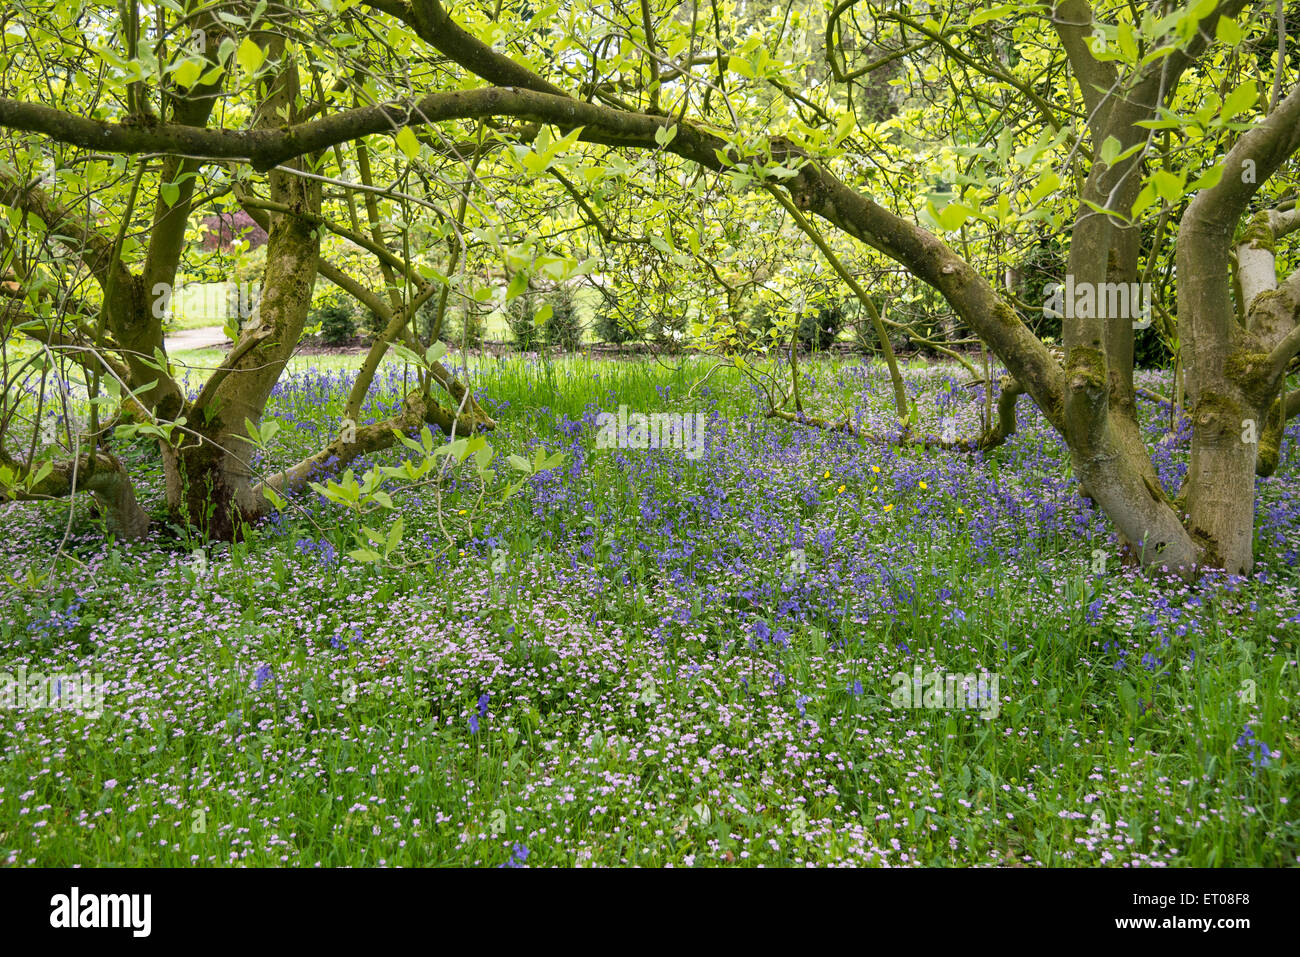 Claytonia And Bluebells Growing Beneath A Mature Magnolia Tree In